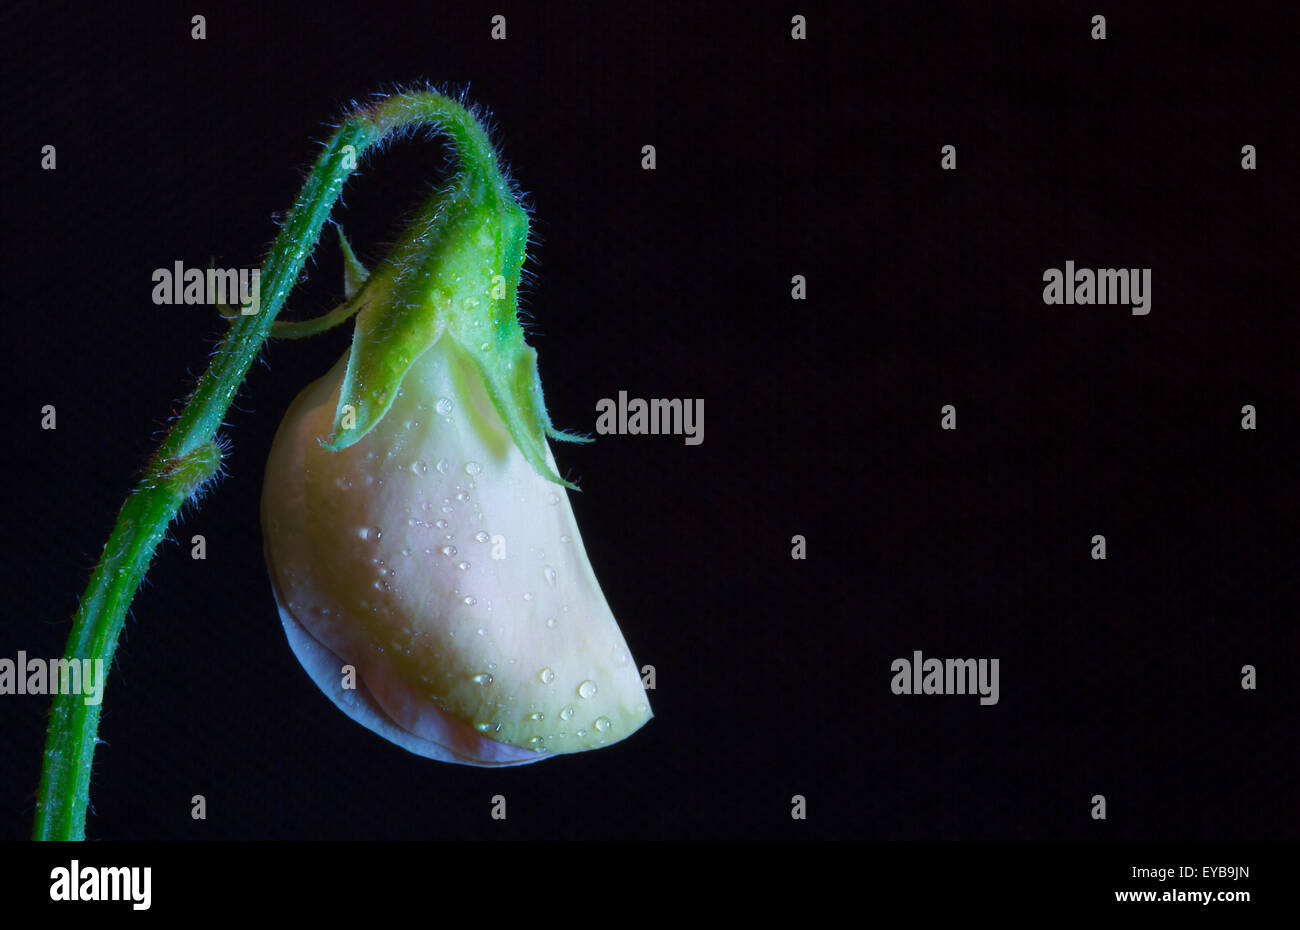 A Sweet Pea side lit, with a black background. Space to right for copy' - Stock Image